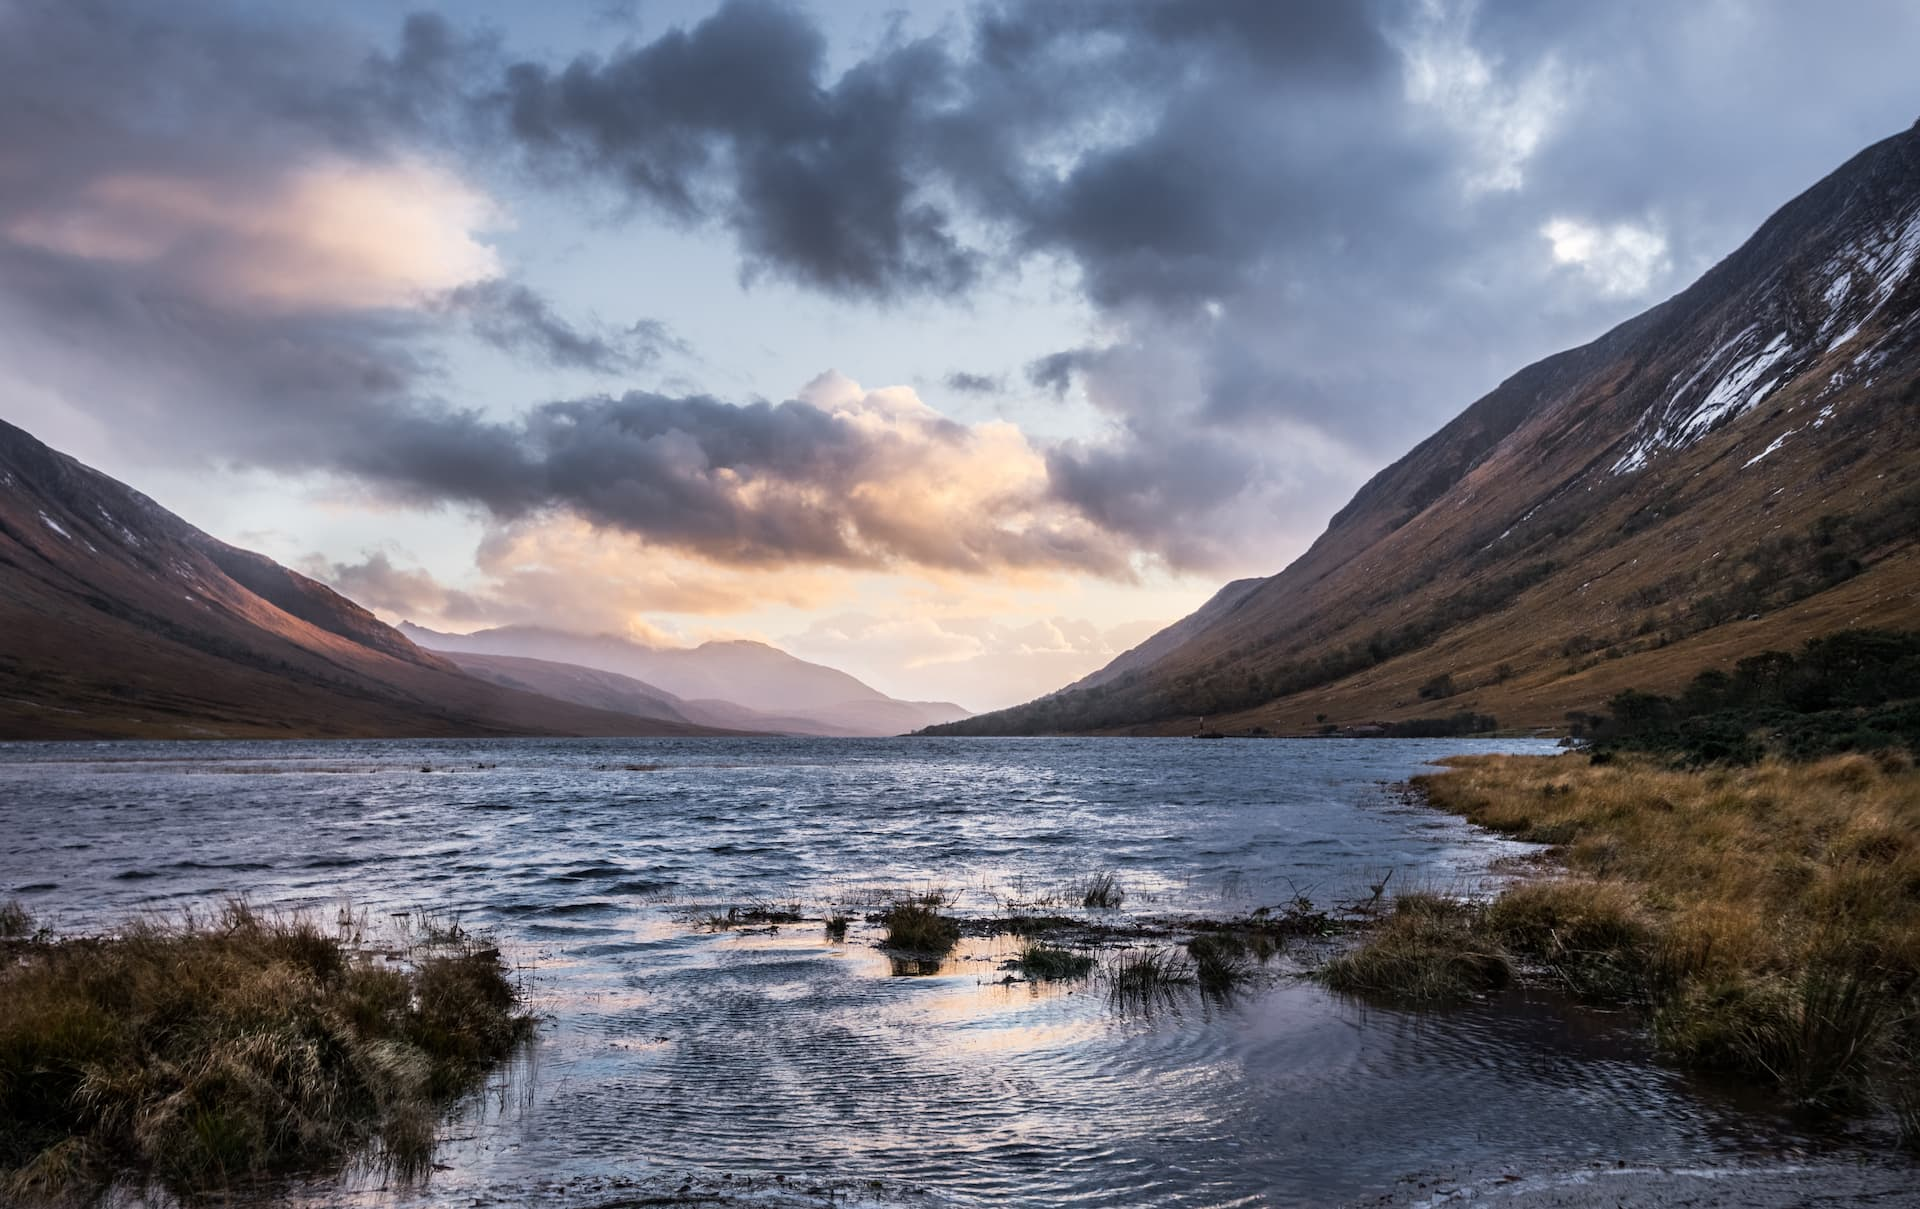 Loch Etive – Harry Potter and the Deathly Hallows Part 1